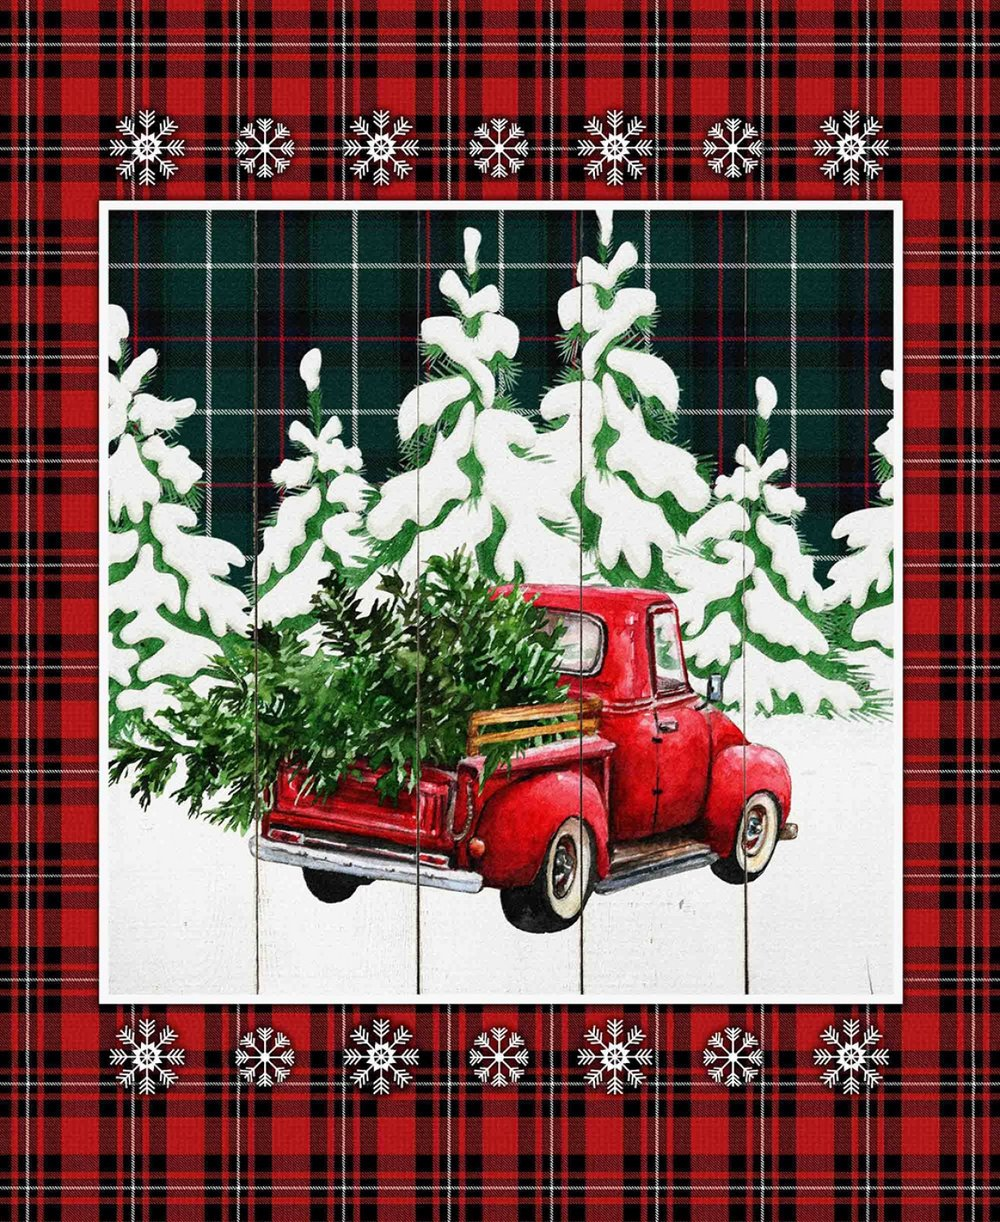 Over the River Red Truck Christmas Panel with Plaid Border